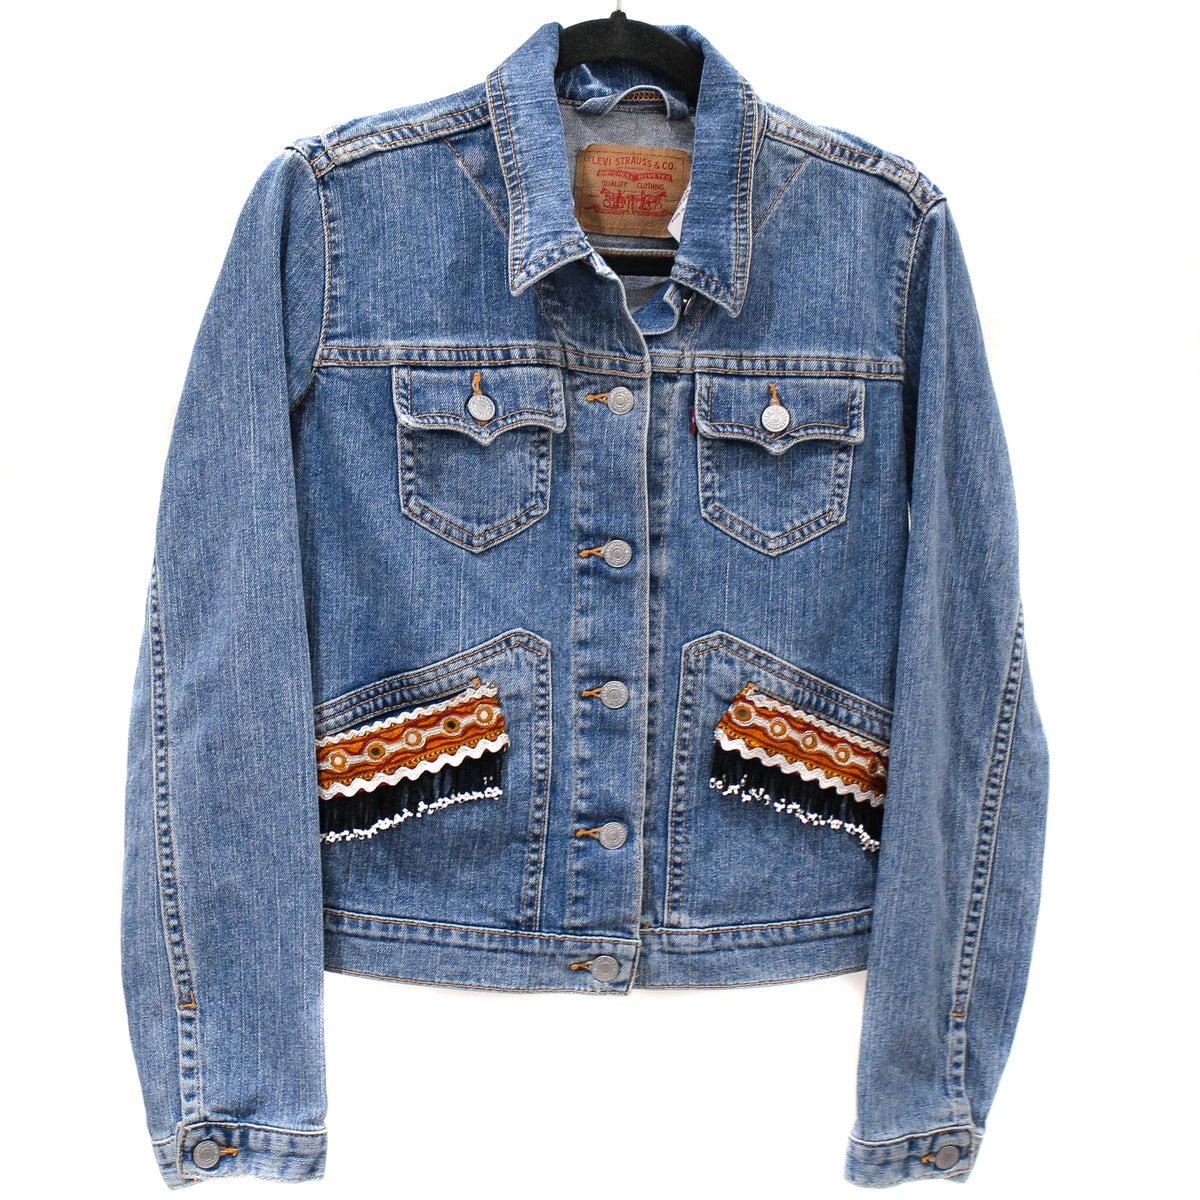 Image of Custom Vintage Levi's Jacket